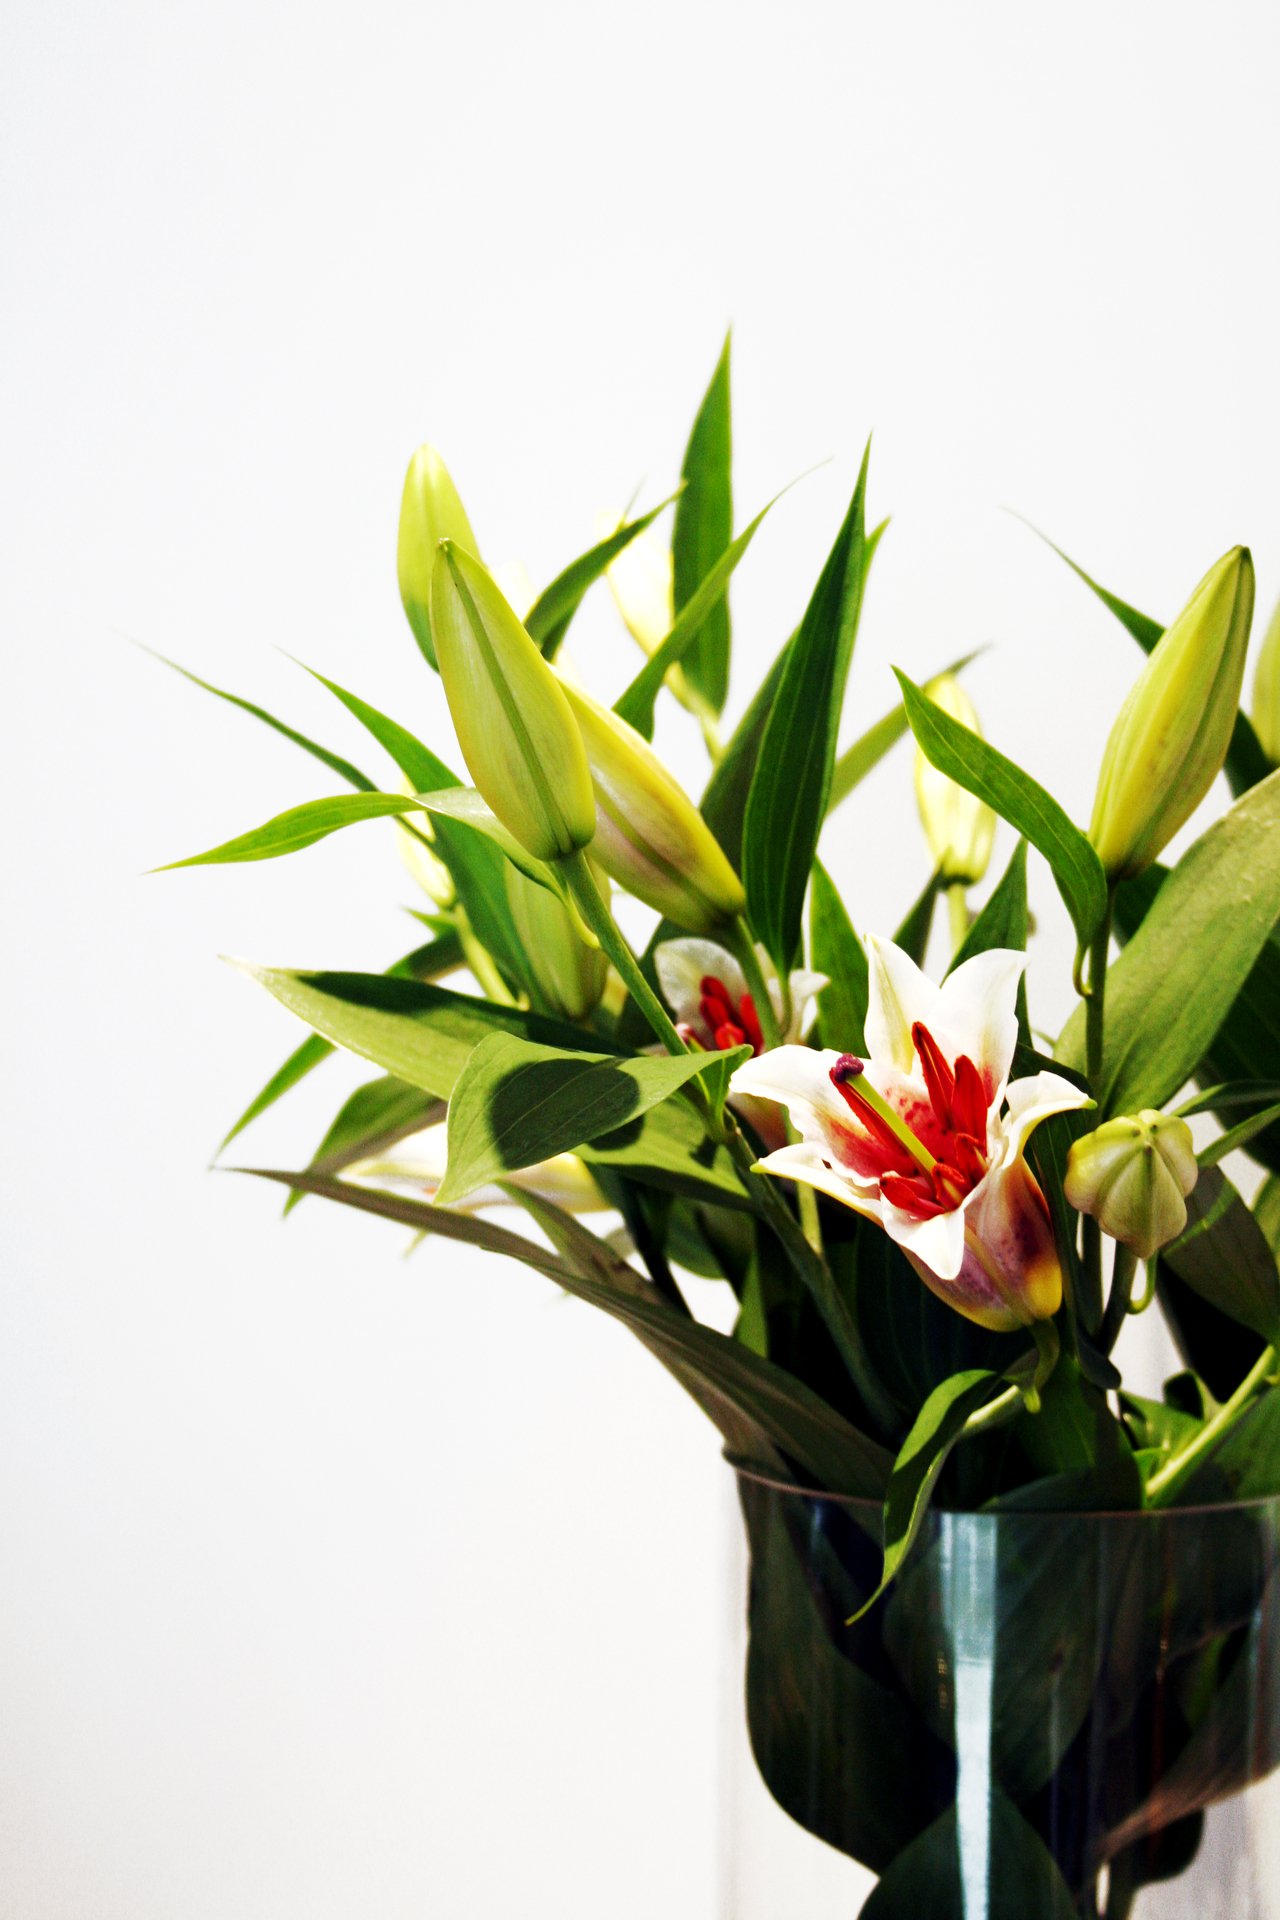 What to expect when ordering flowers online